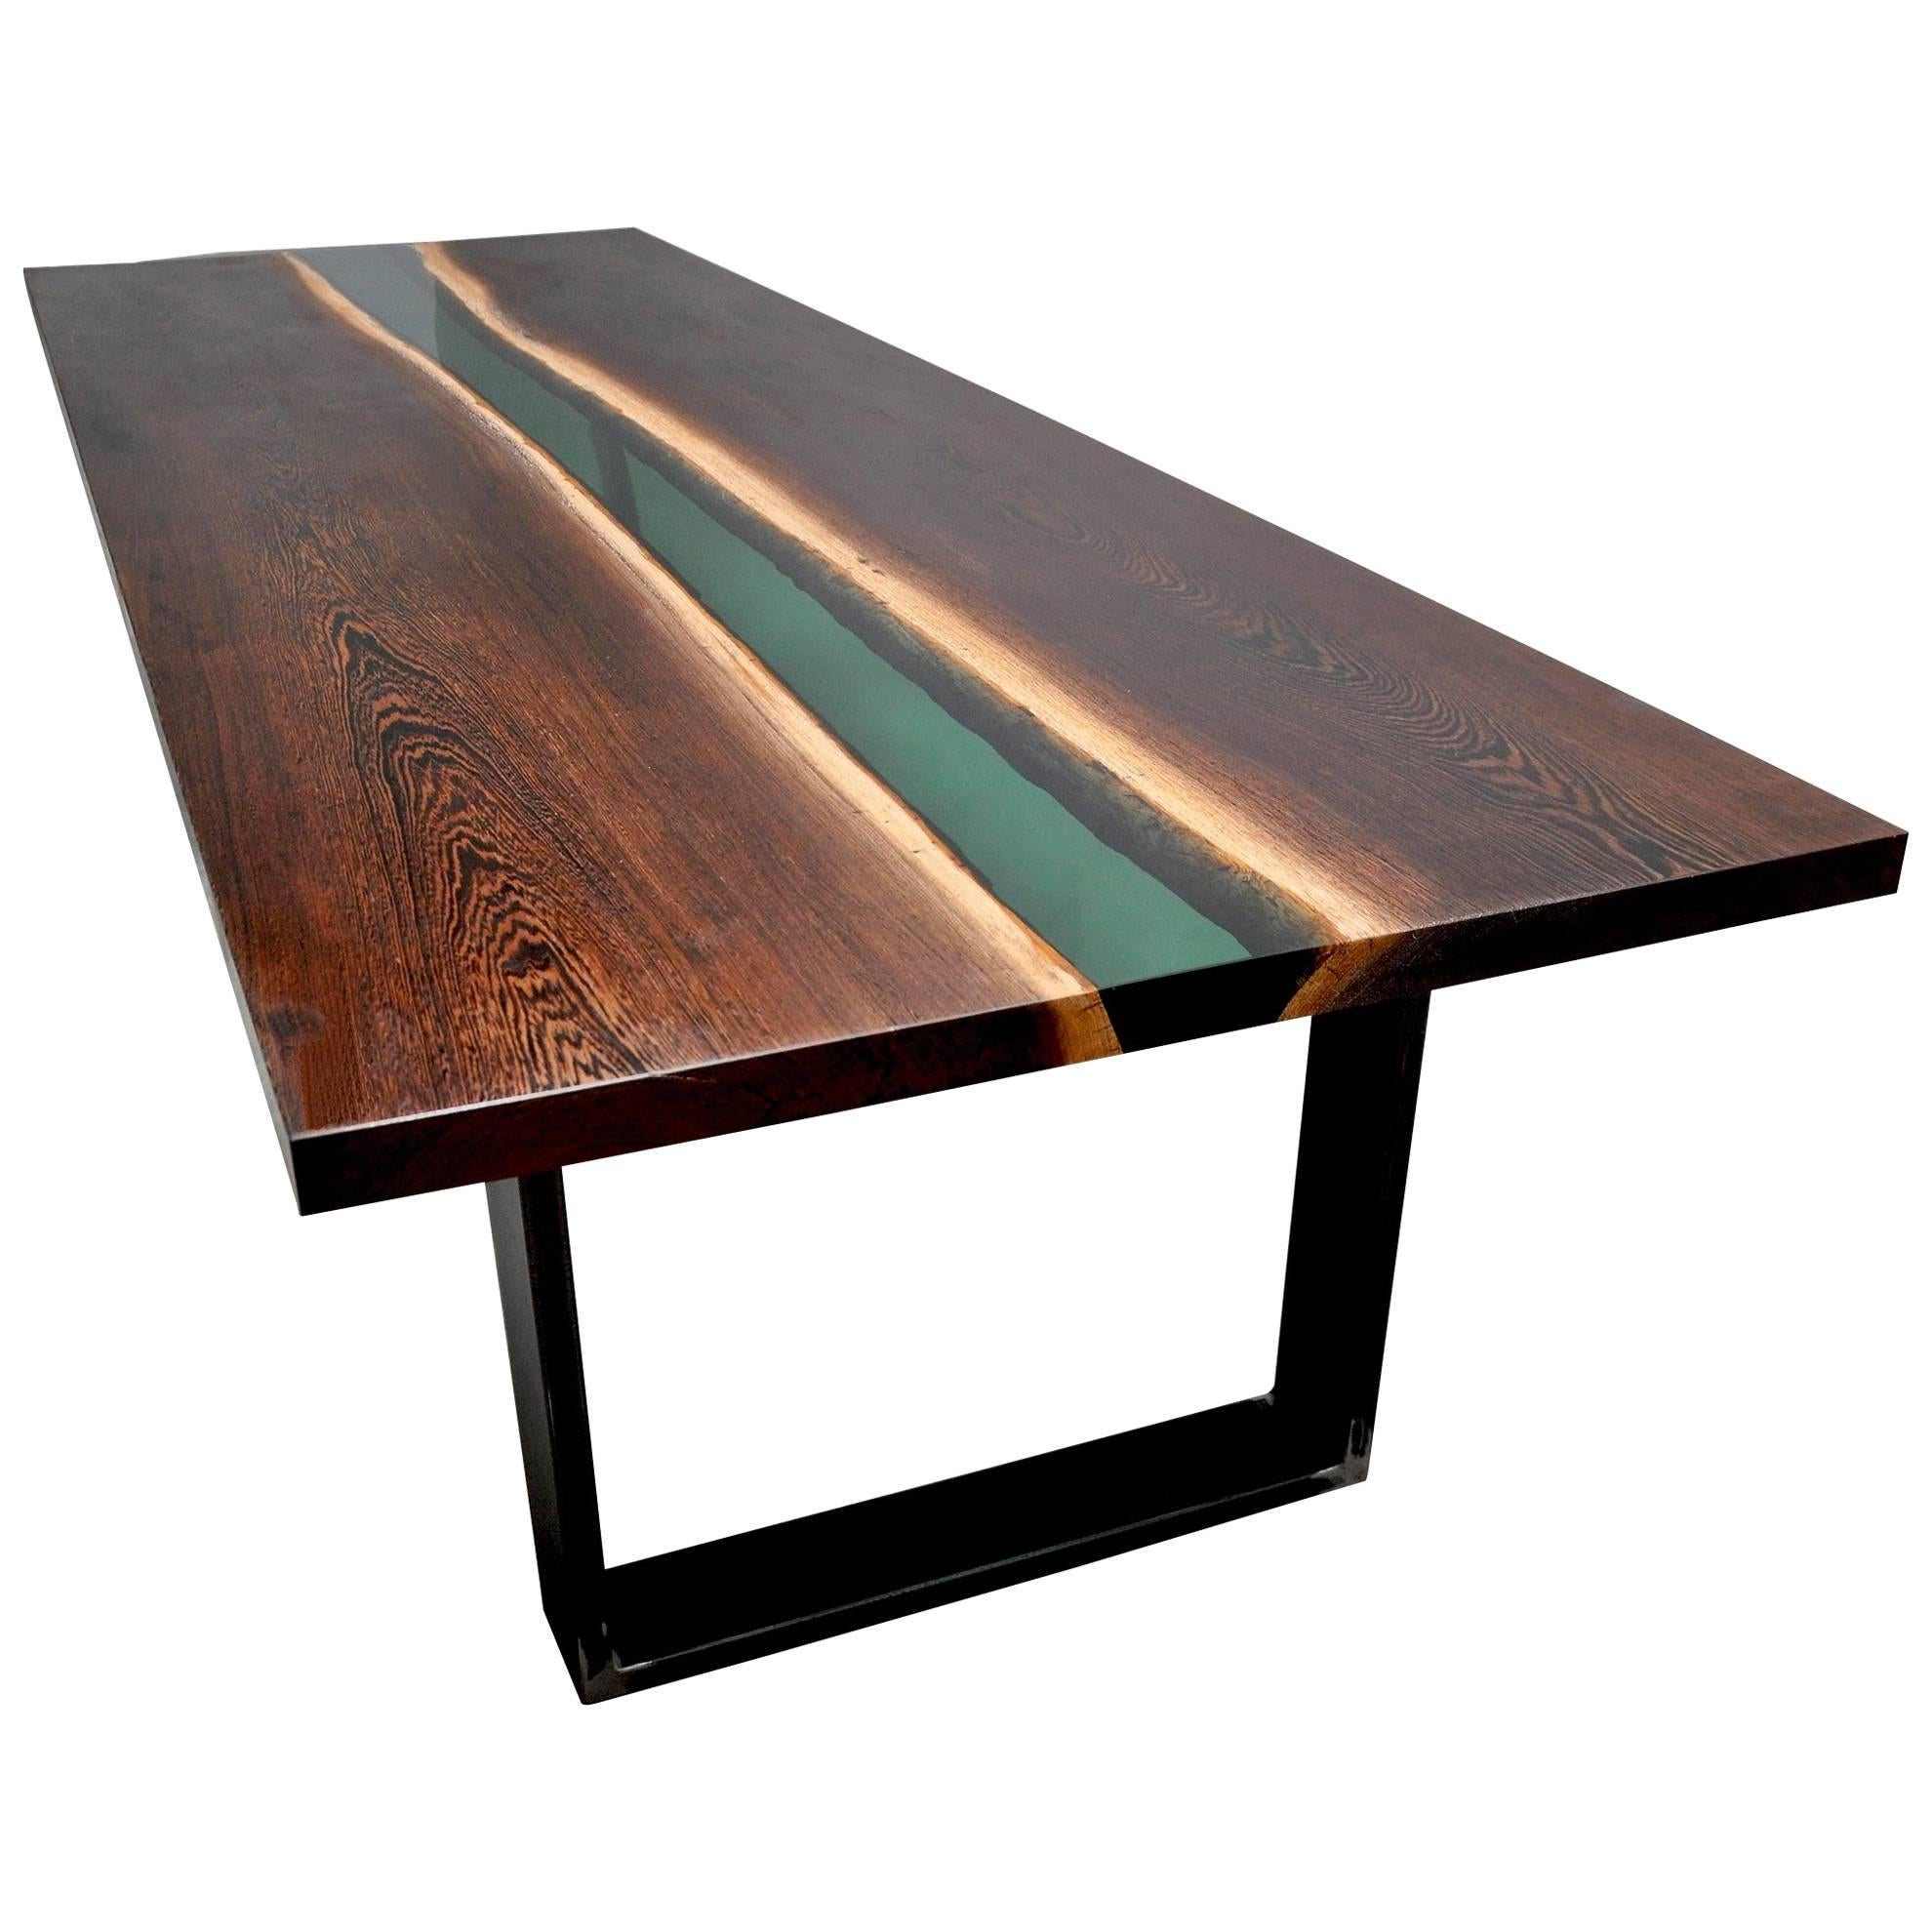 Merveilleux Emerald Forest Dinning Table Or Conference Table In Wenge Wood And Resin  For Sale